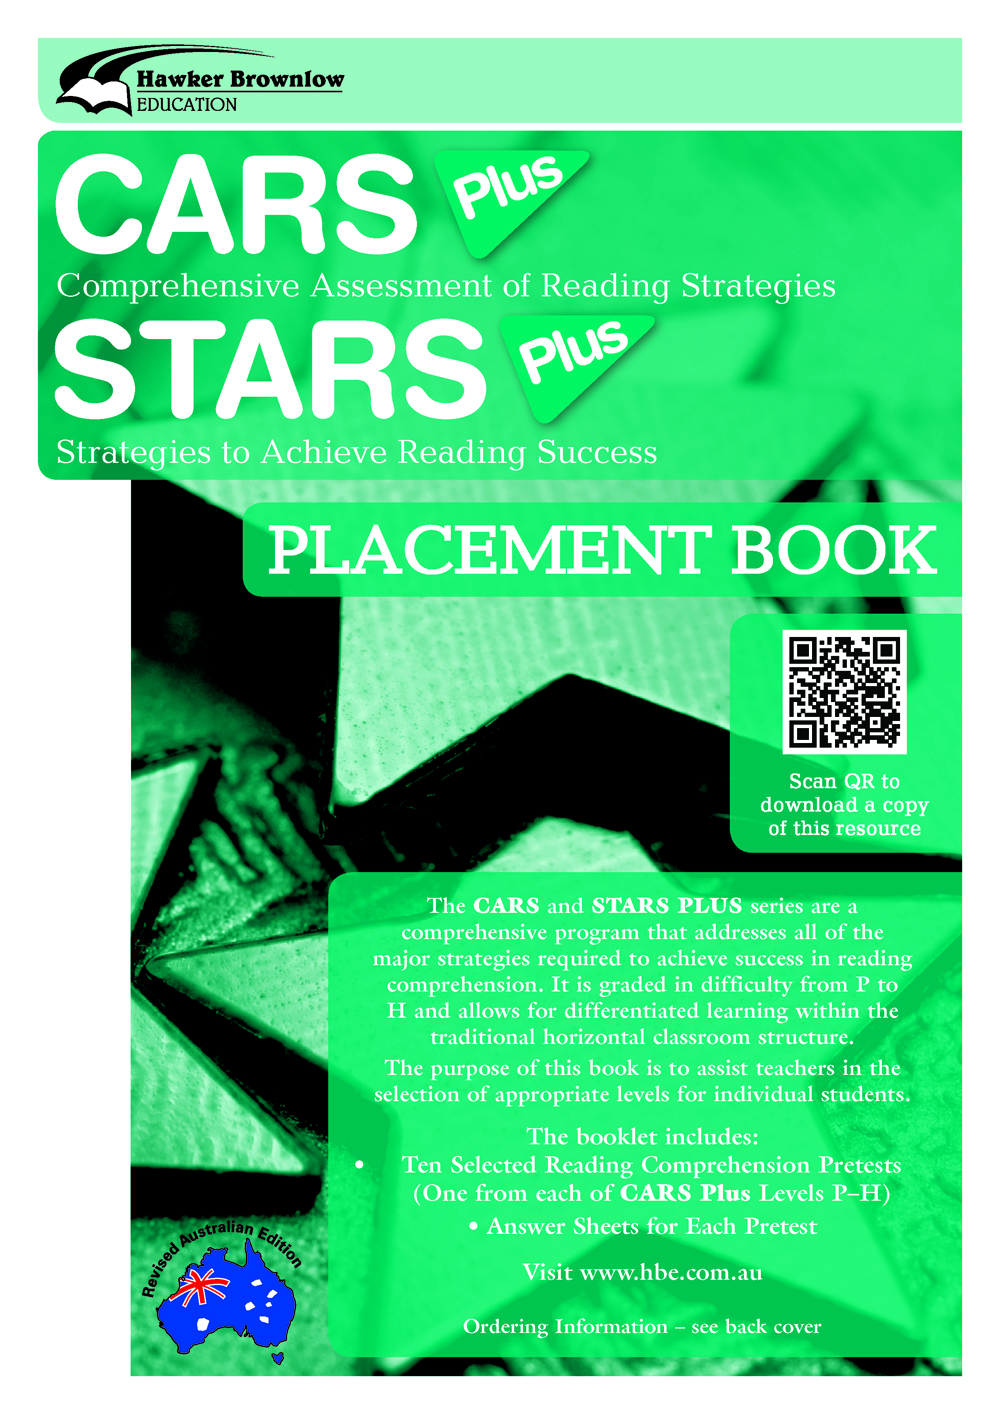 CARS and STARS Placement Booklet